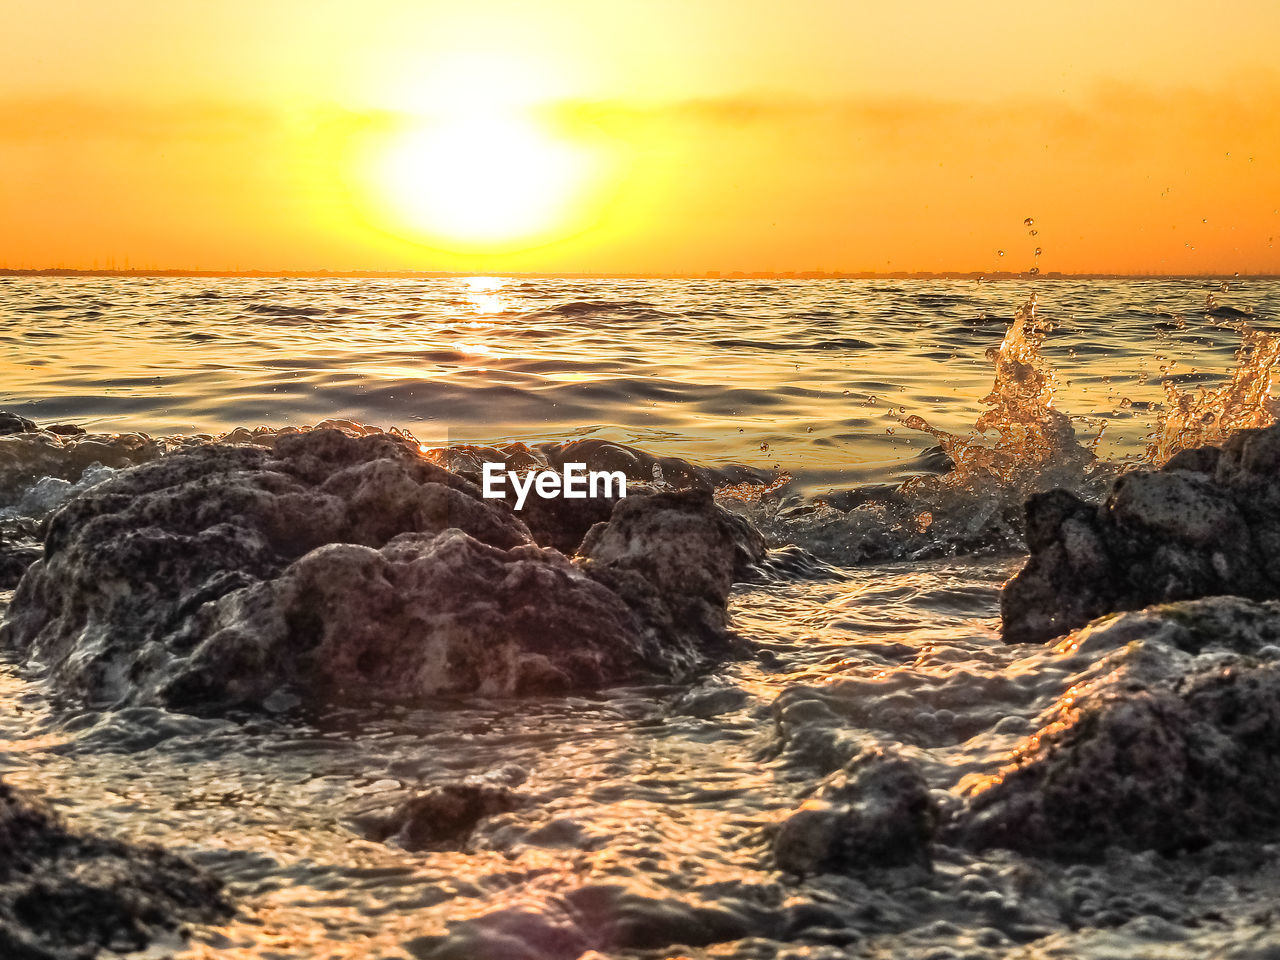 sunset, sea, sun, beauty in nature, nature, orange color, scenics, horizon over water, water, sunlight, tranquil scene, tranquility, sky, no people, beach, wave, reflection, outdoors, close-up, day